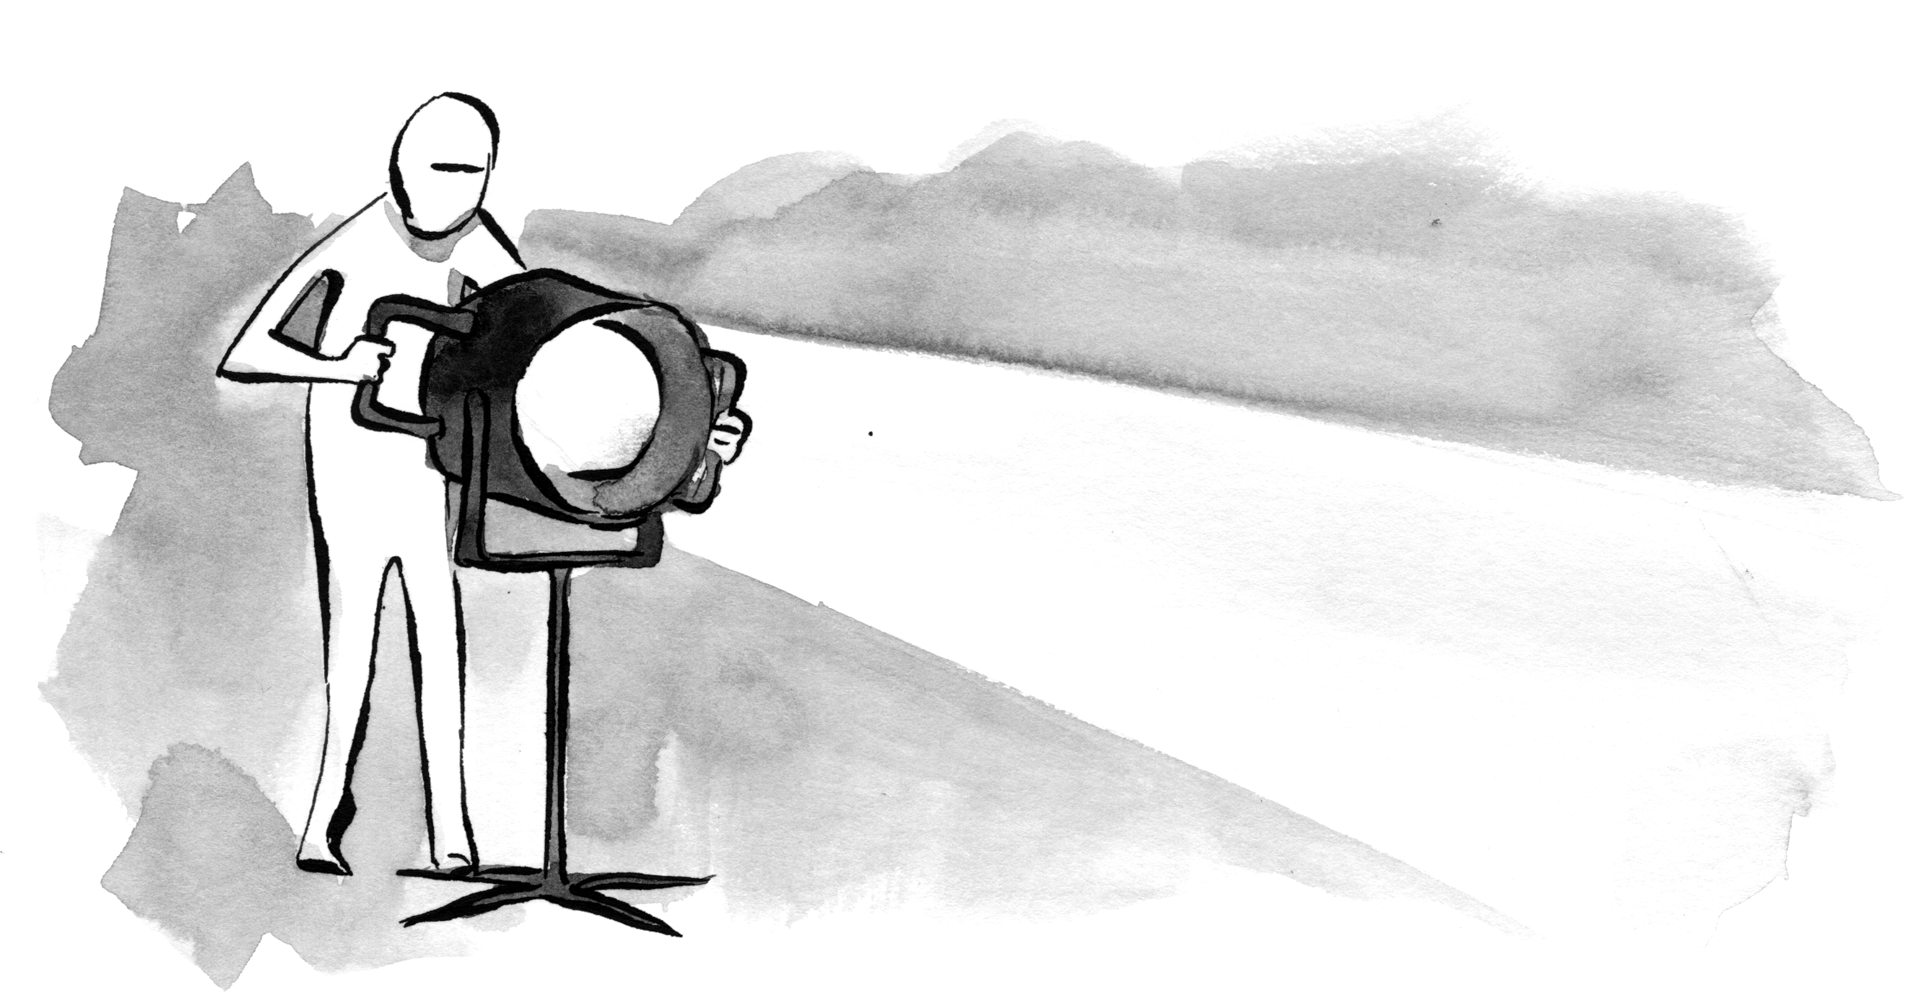 alistapart-09.png